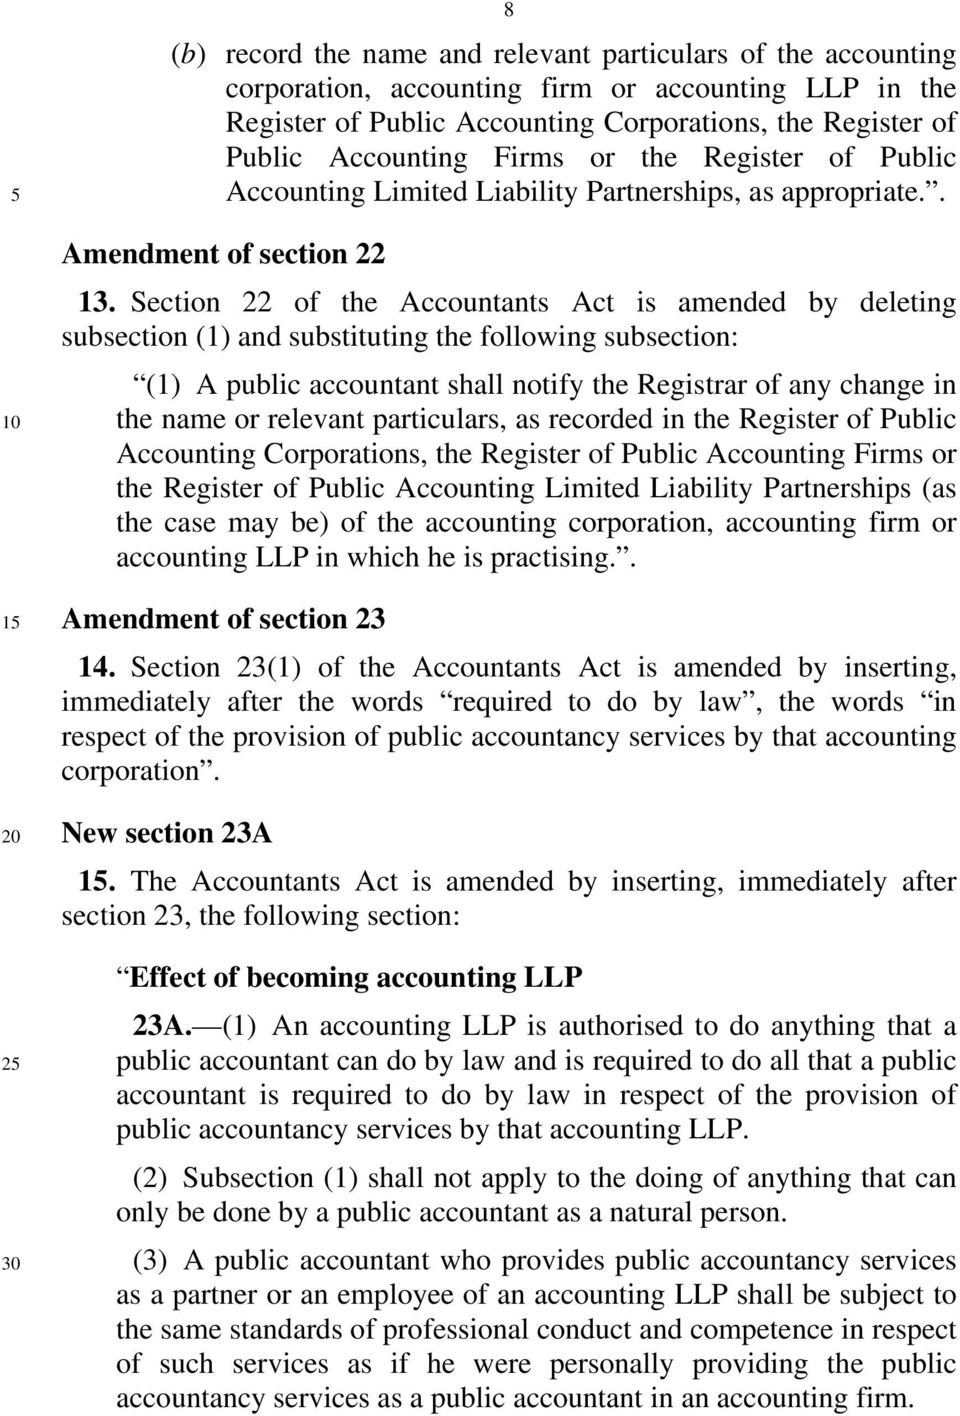 Section 22 of the Accountants Act is amended by deleting subsection (1) and substituting the following subsection: (1) A public accountant shall notify the Registrar of any change in the name or